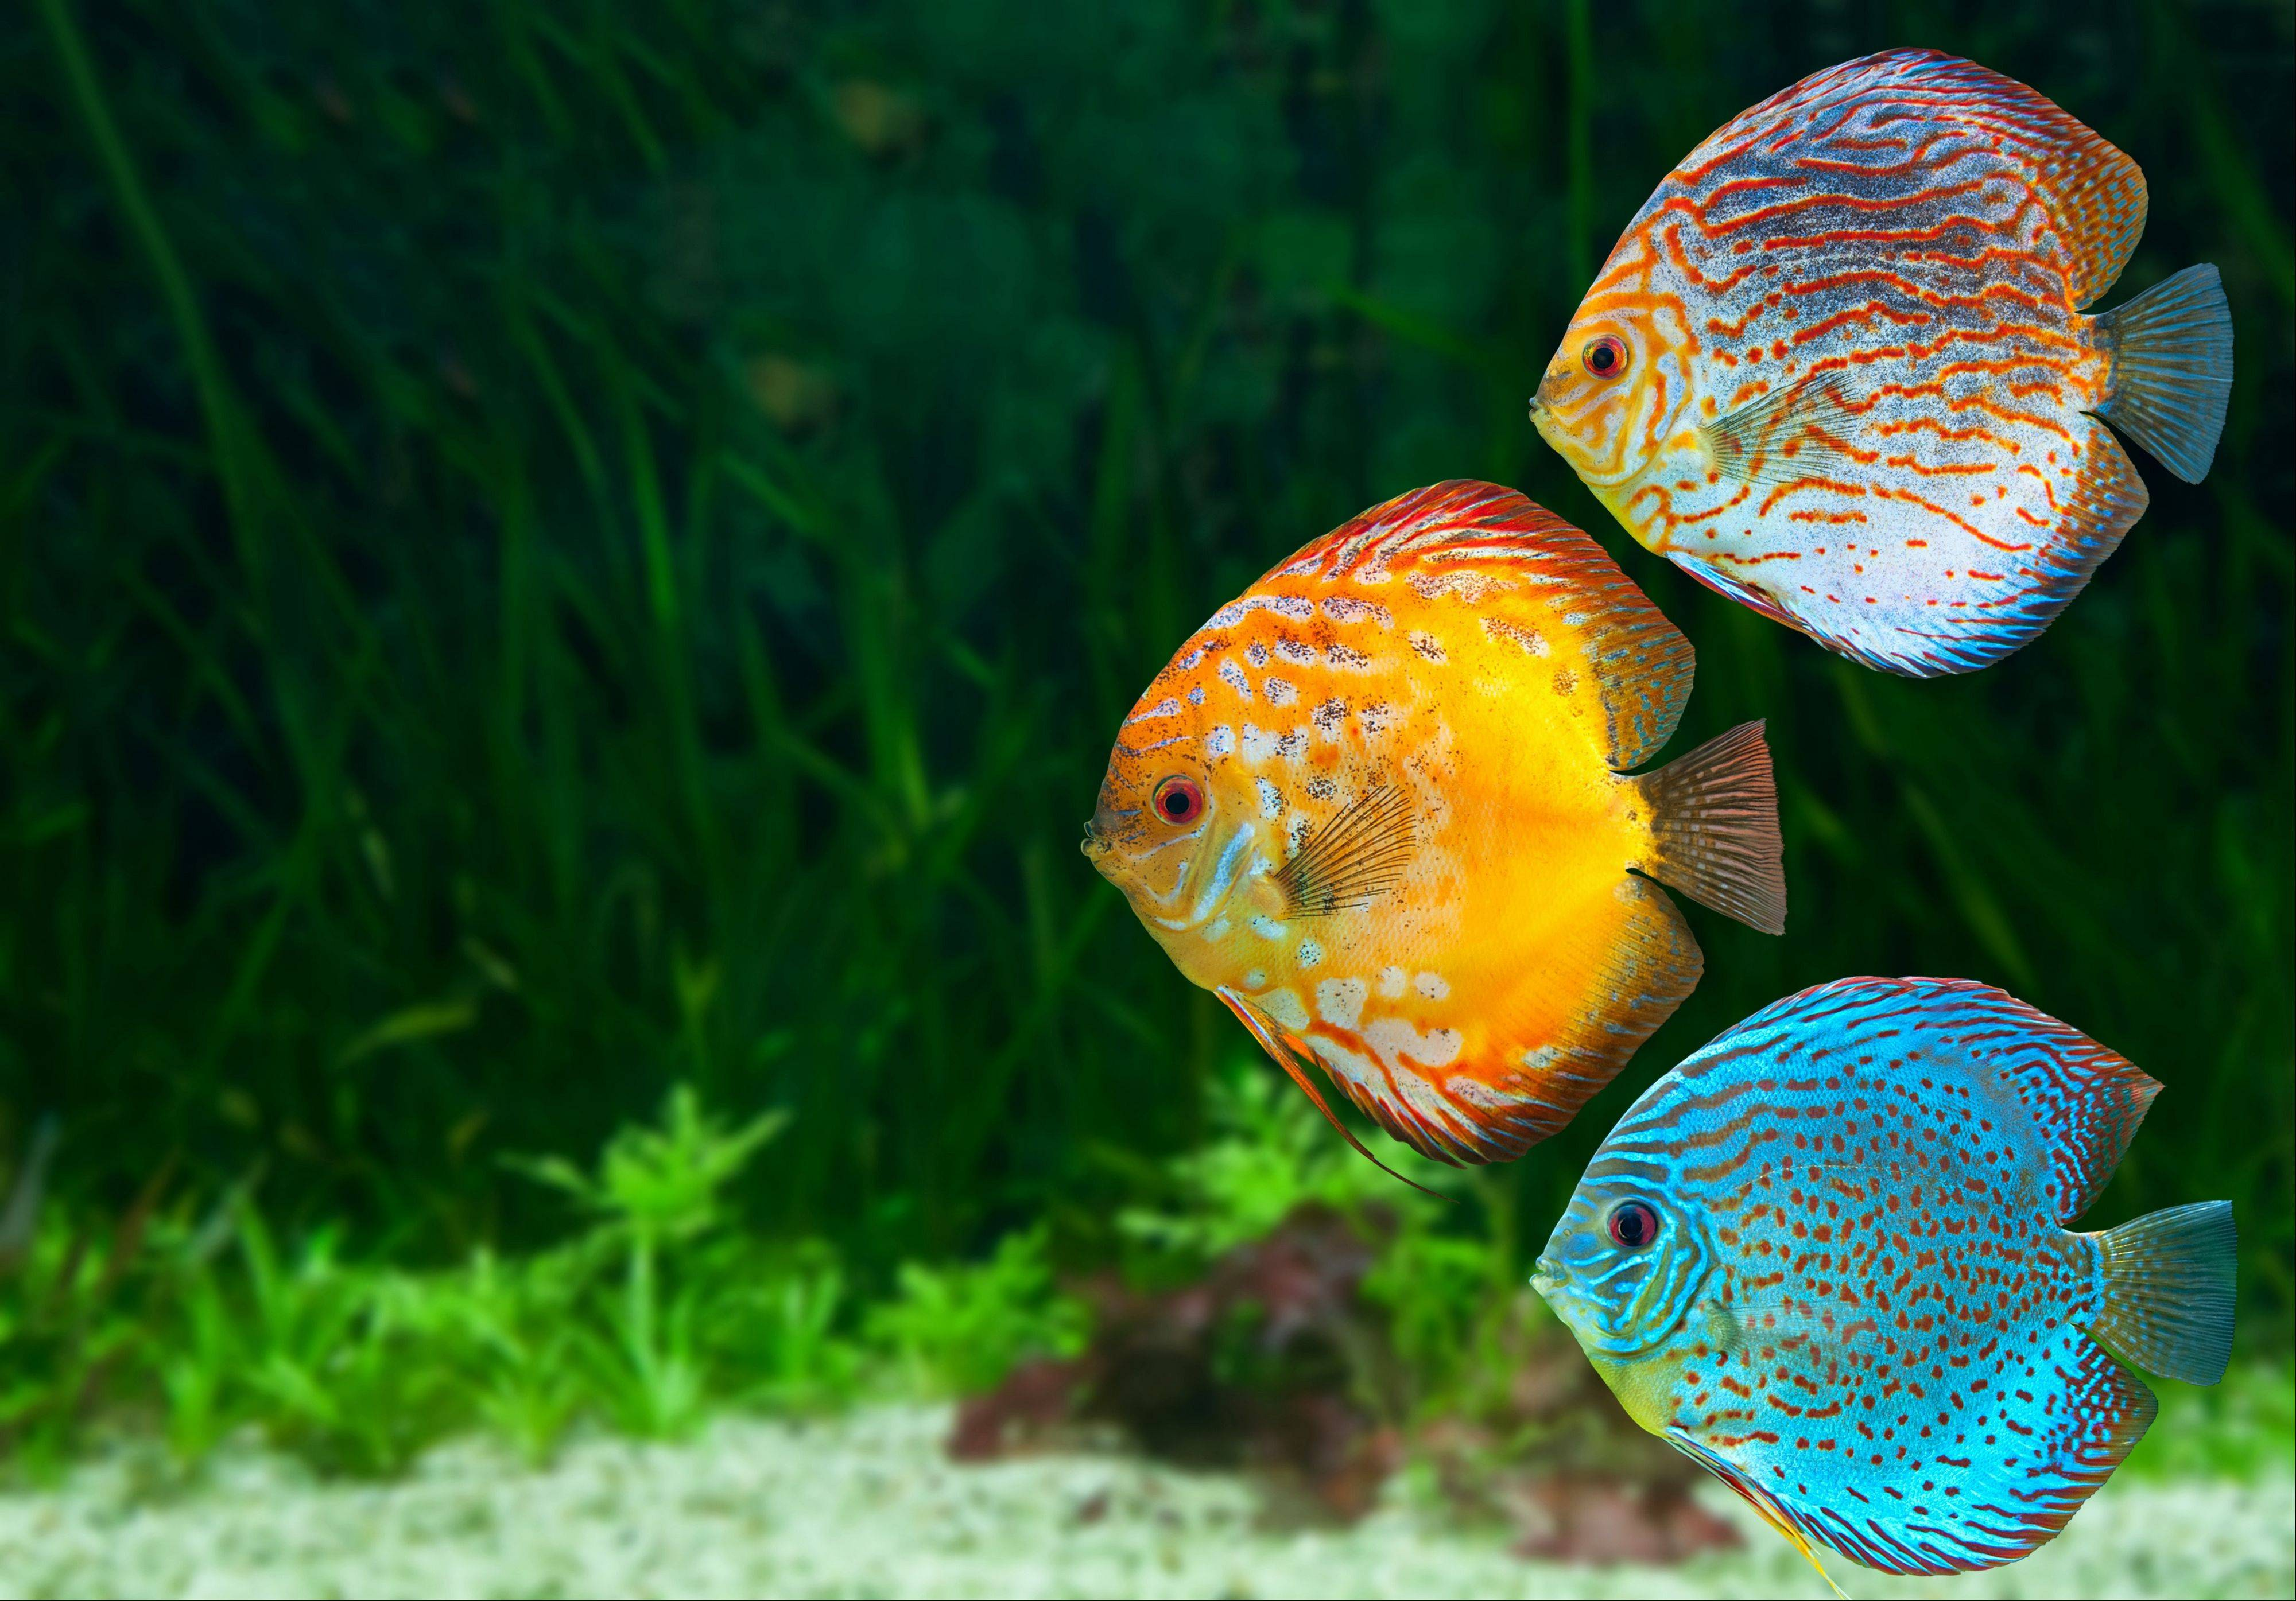 See discus fish and other creatures at the Aquatic Experience Chicago at the Renaissance Schaumburg Hotel and Convention Center in Schaumburg the weekend of Friday, Nov. 15, through Sunday, Nov. 17.